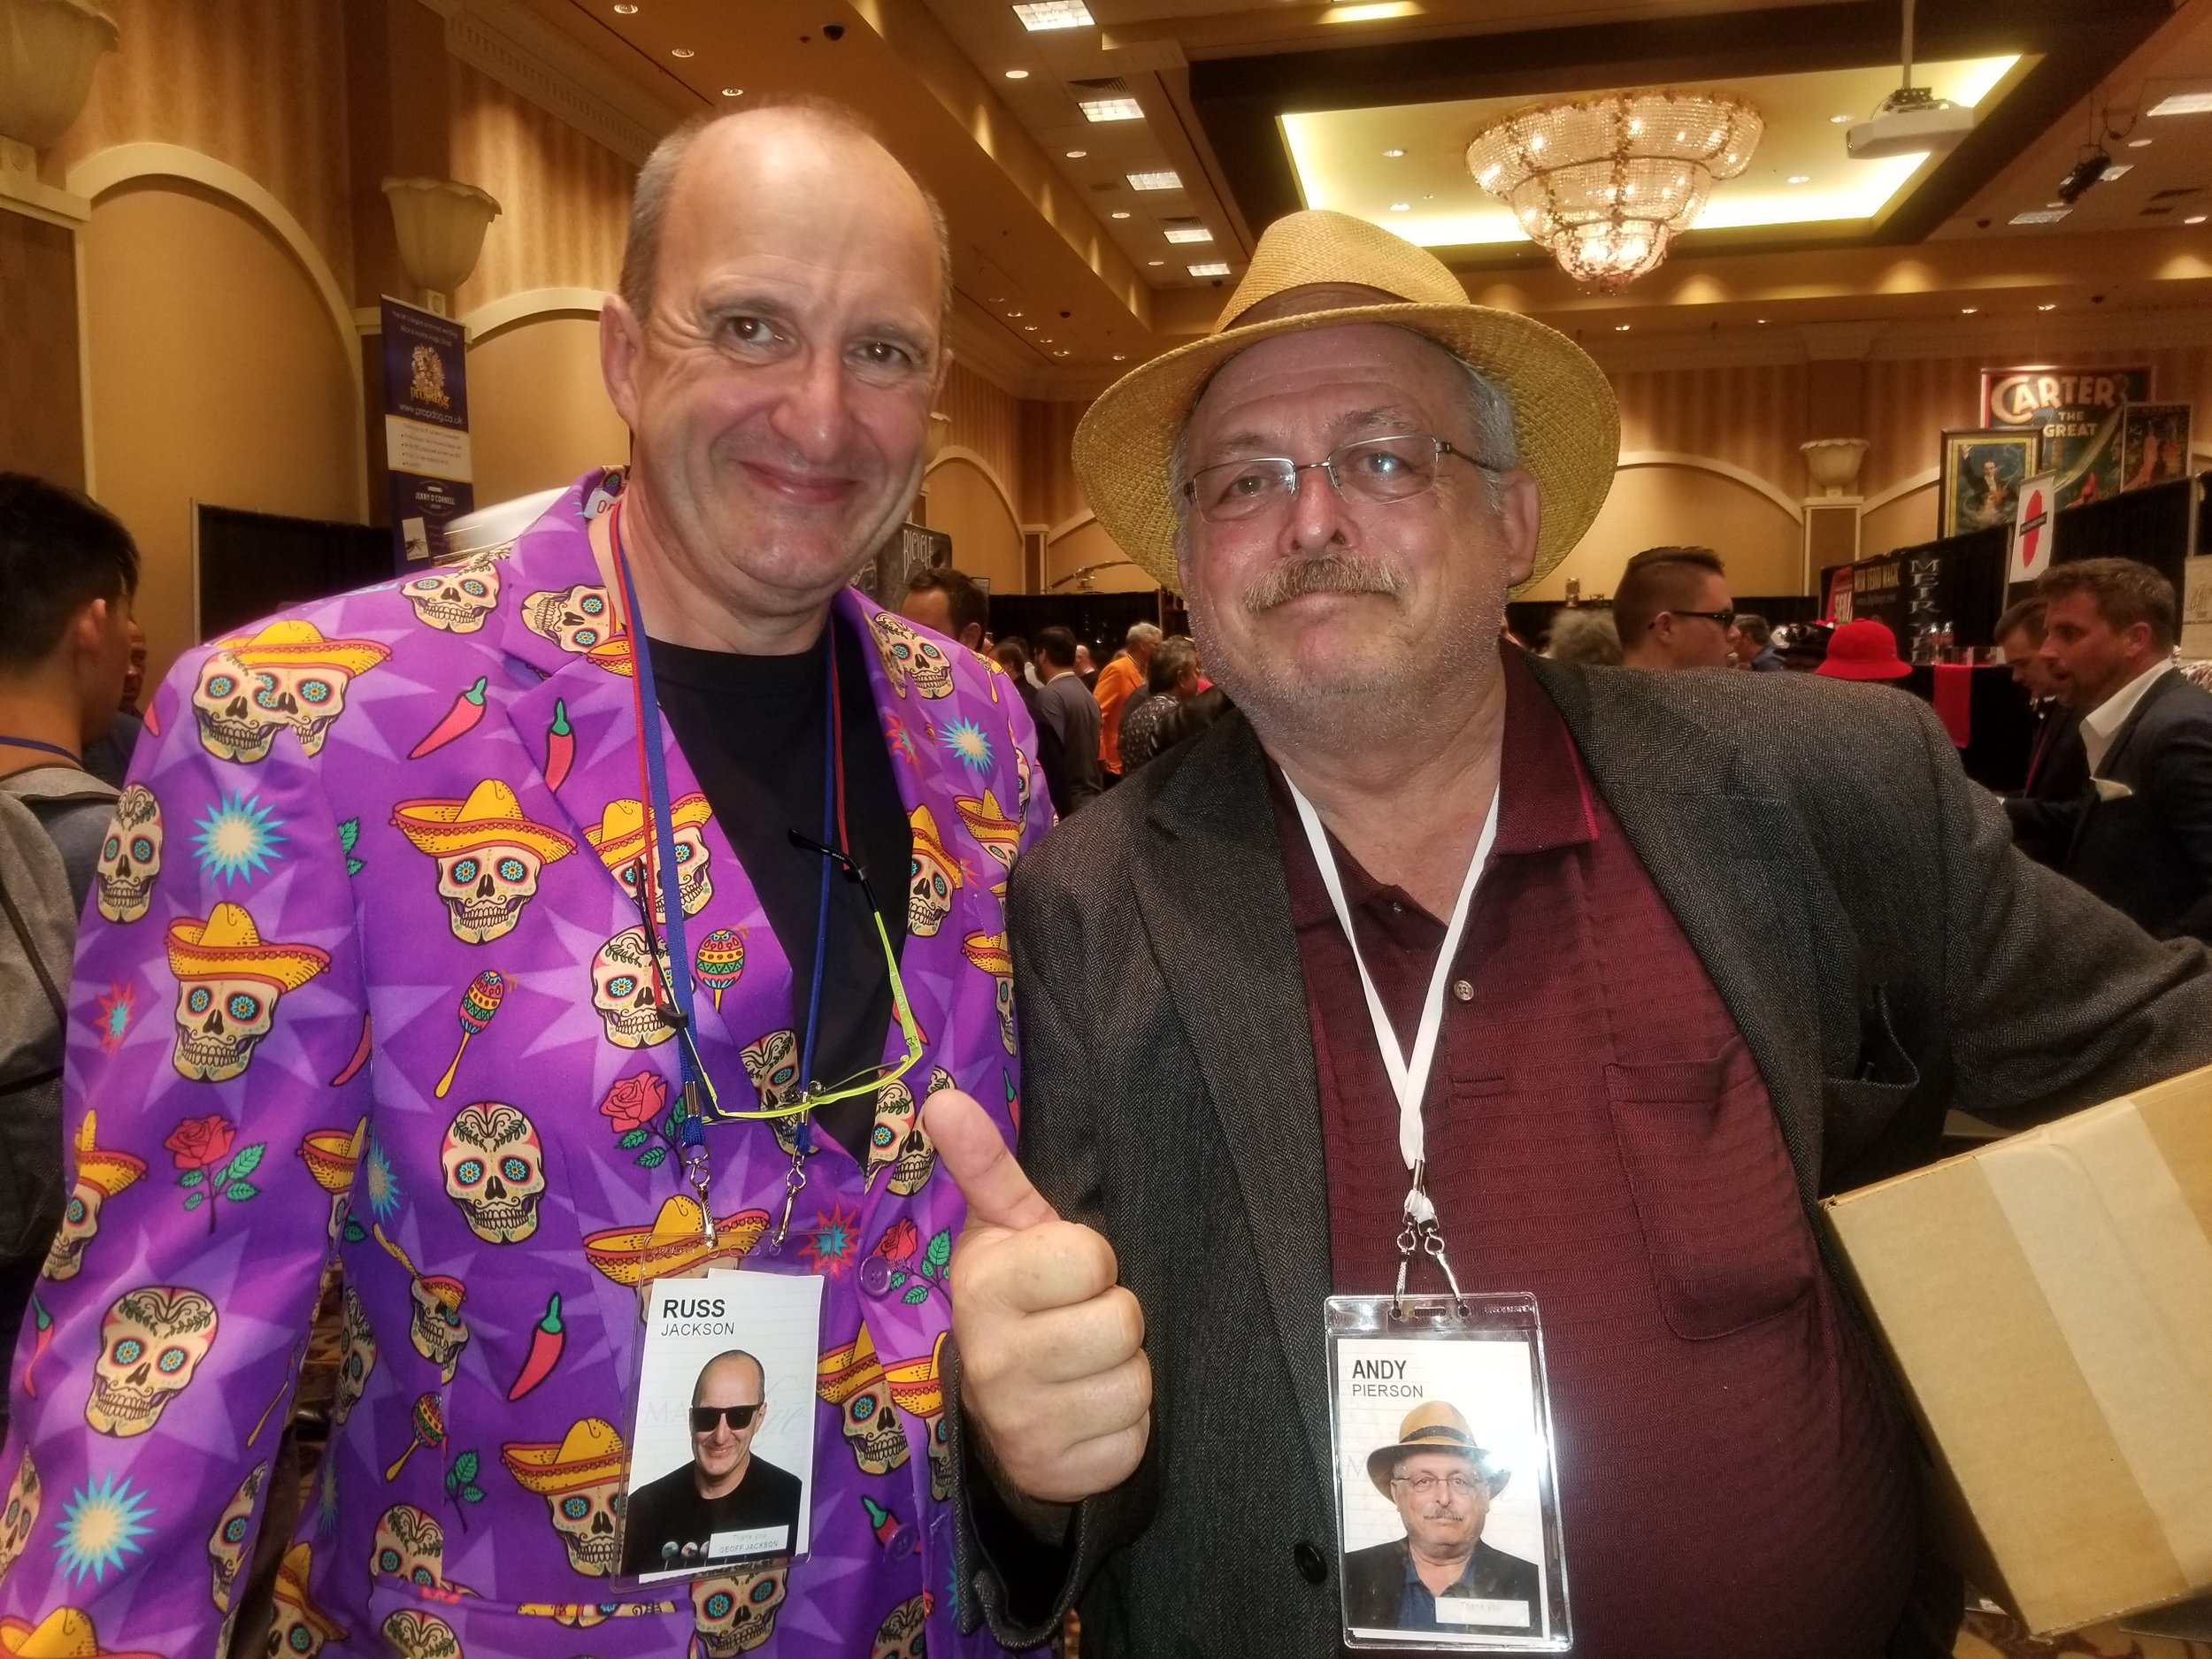 Russ Jackson and Andy Pierson